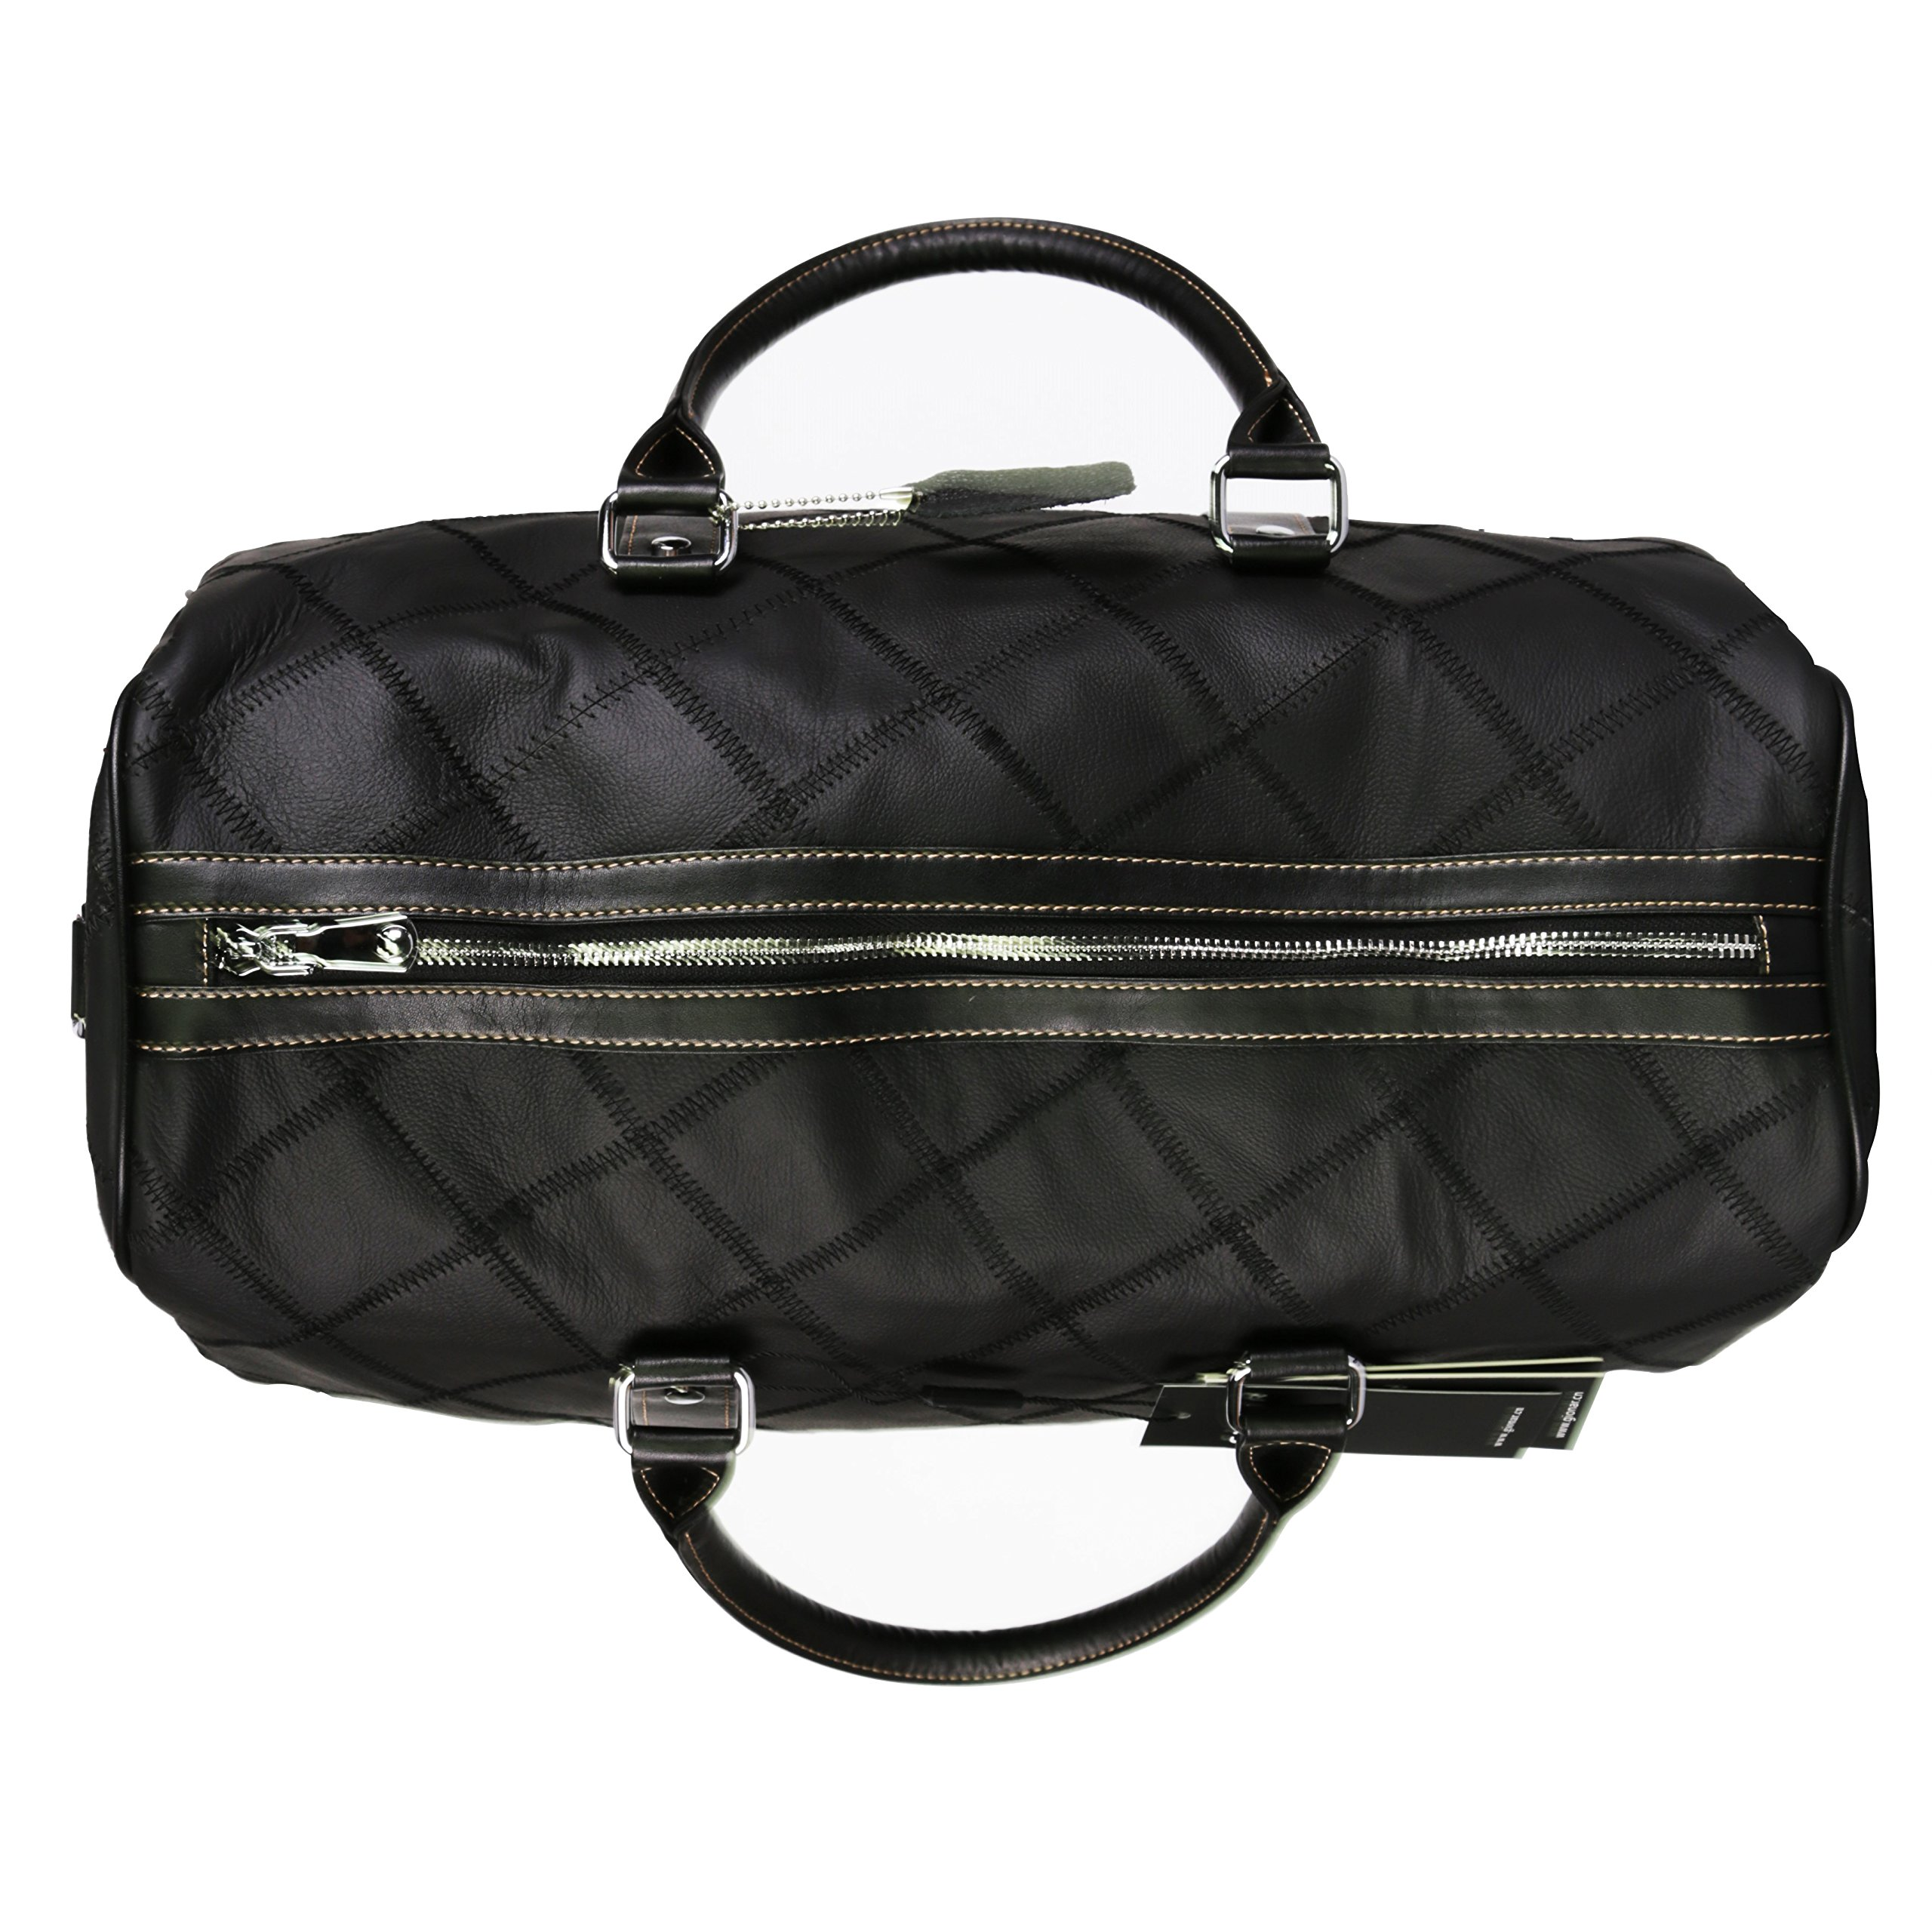 Leather Travel Duffel Bag Weekender Overnight Carry On Luggage Luxurious Vintage Leather Perfect Fit to Airplane Underseat (Black) by Gionar (Image #6)